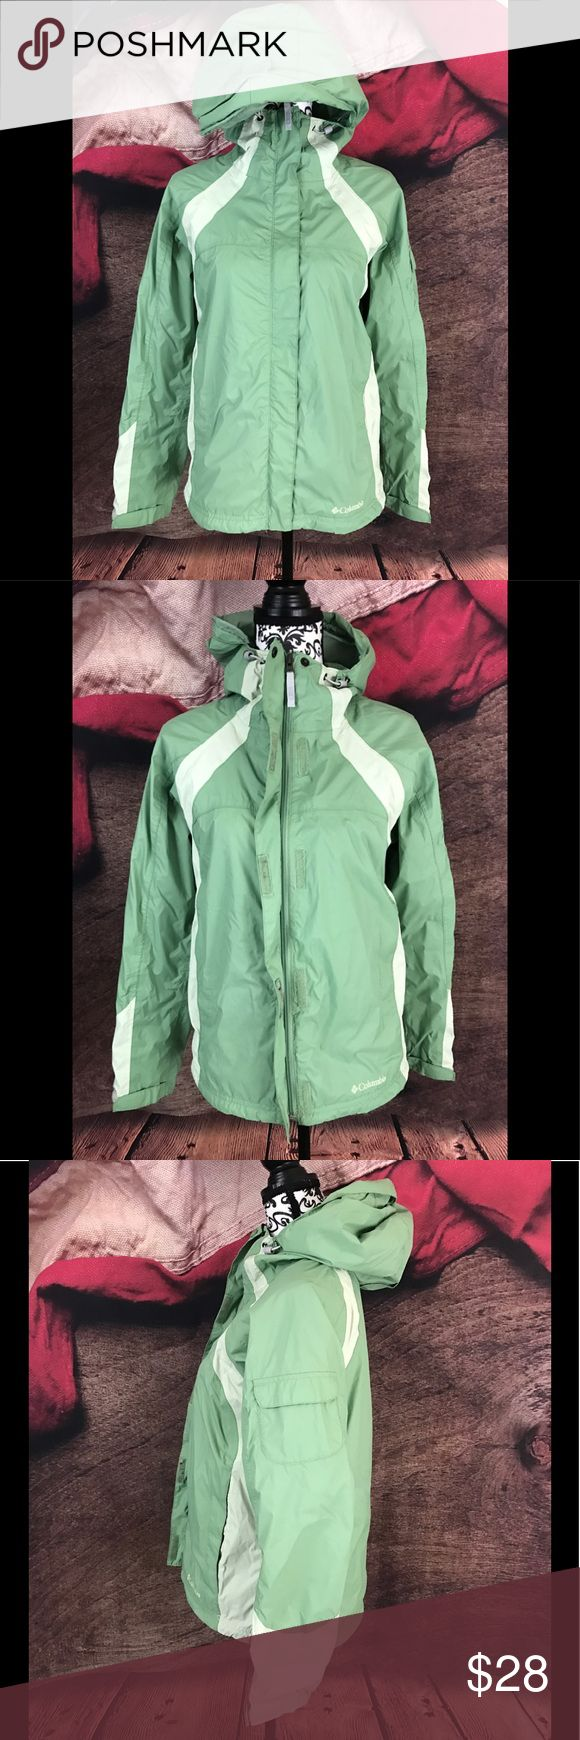 """Columbia Green Striped Packable Rain Jacket M Pre-Owned in Excellent Condition Columbia Women's Green Striped Packable Rain Jacket Medium  Materials: Shell: 100% Nylon, Lining: 100% Lining  Size: Medium  Measurements: Bust: 20"""" / Shoulders: -"""" / Sleeve: -"""" / Length: 23"""" Columbia Jackets & Coats"""